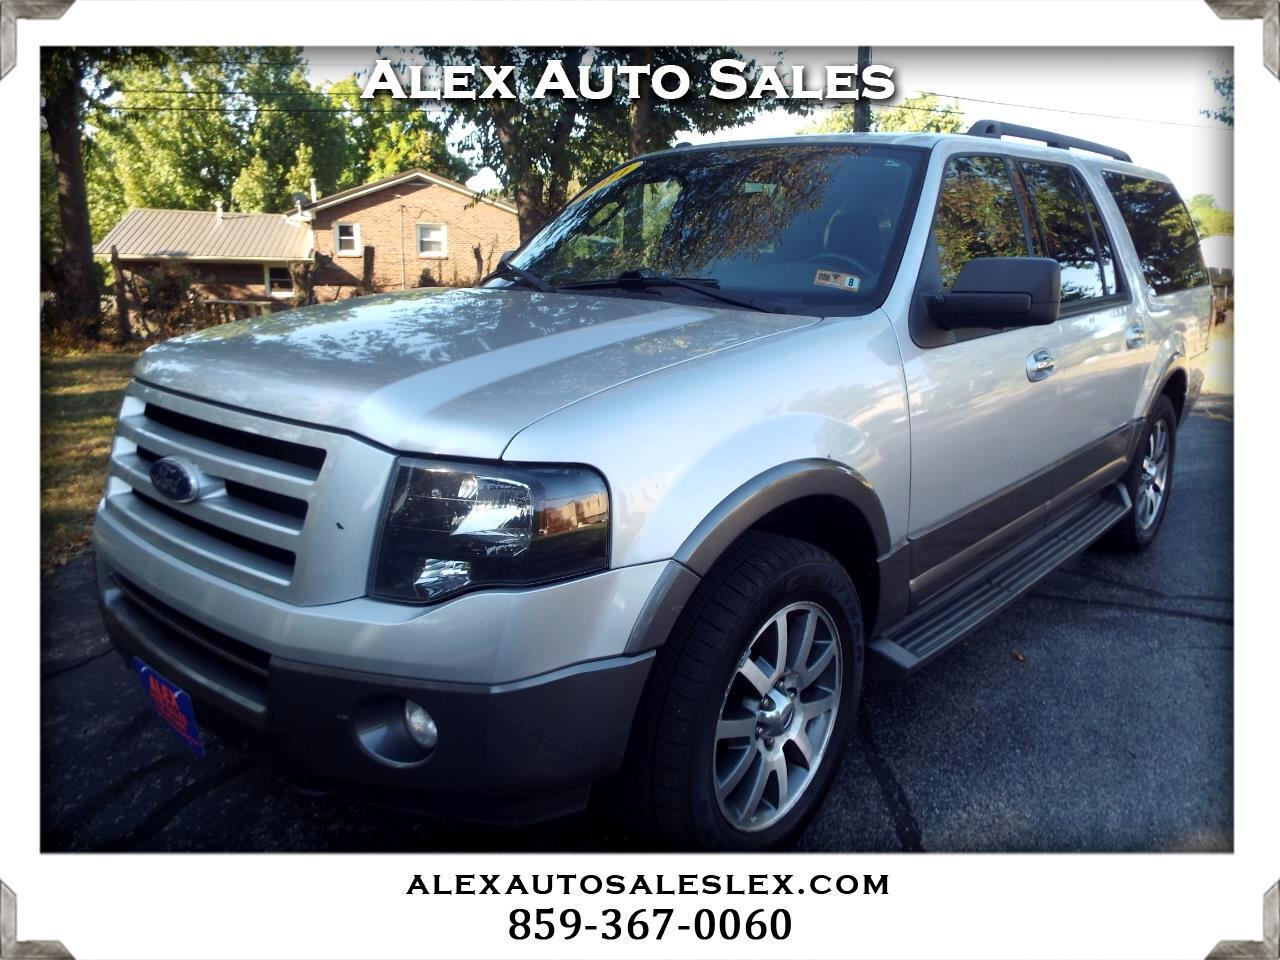 2011 Ford Expedition 5.4L XLT